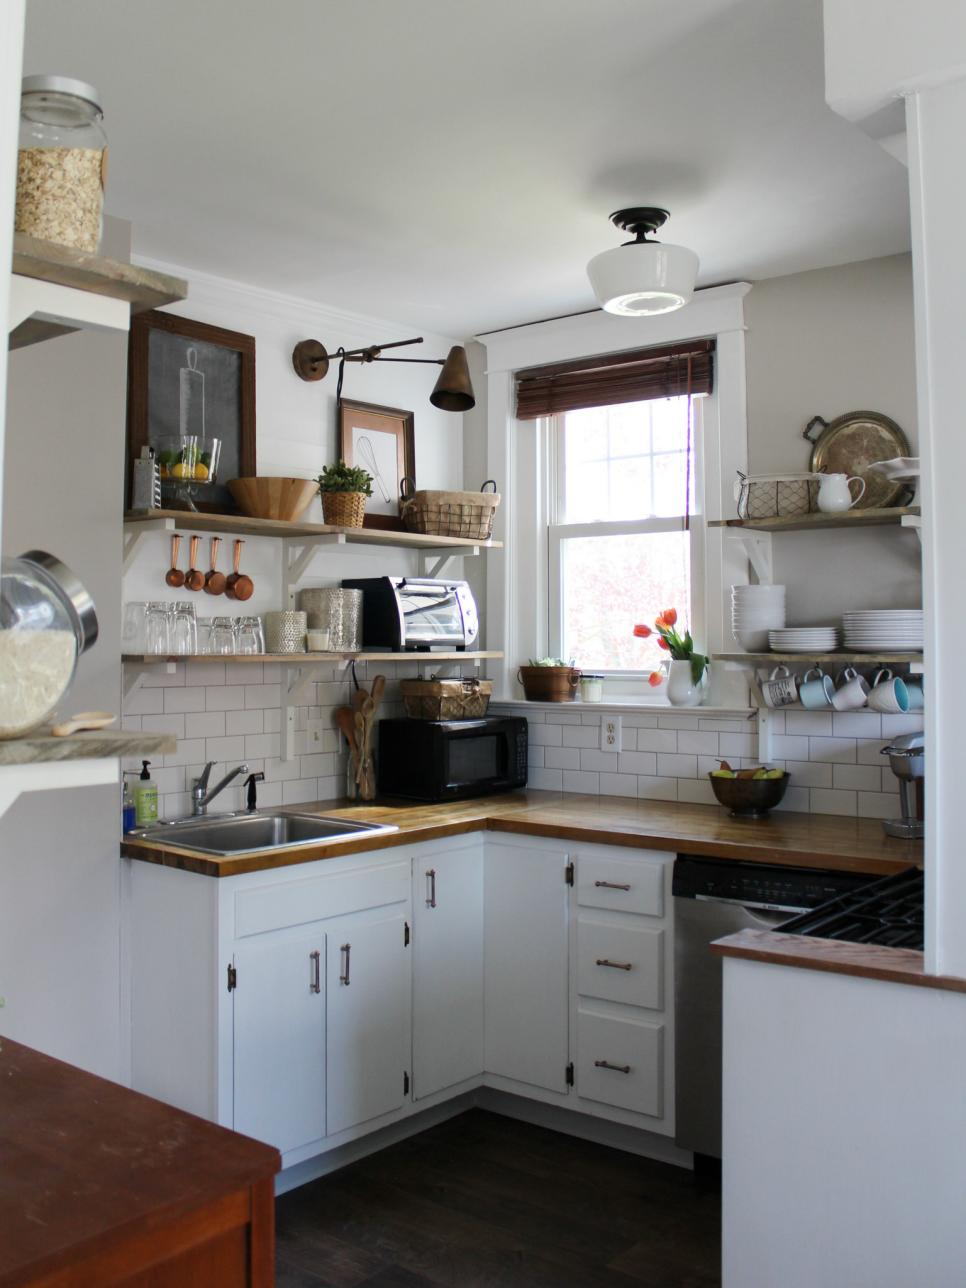 Before and after kitchen remodels on a budget hgtv for Kitchen cabinets on a budget